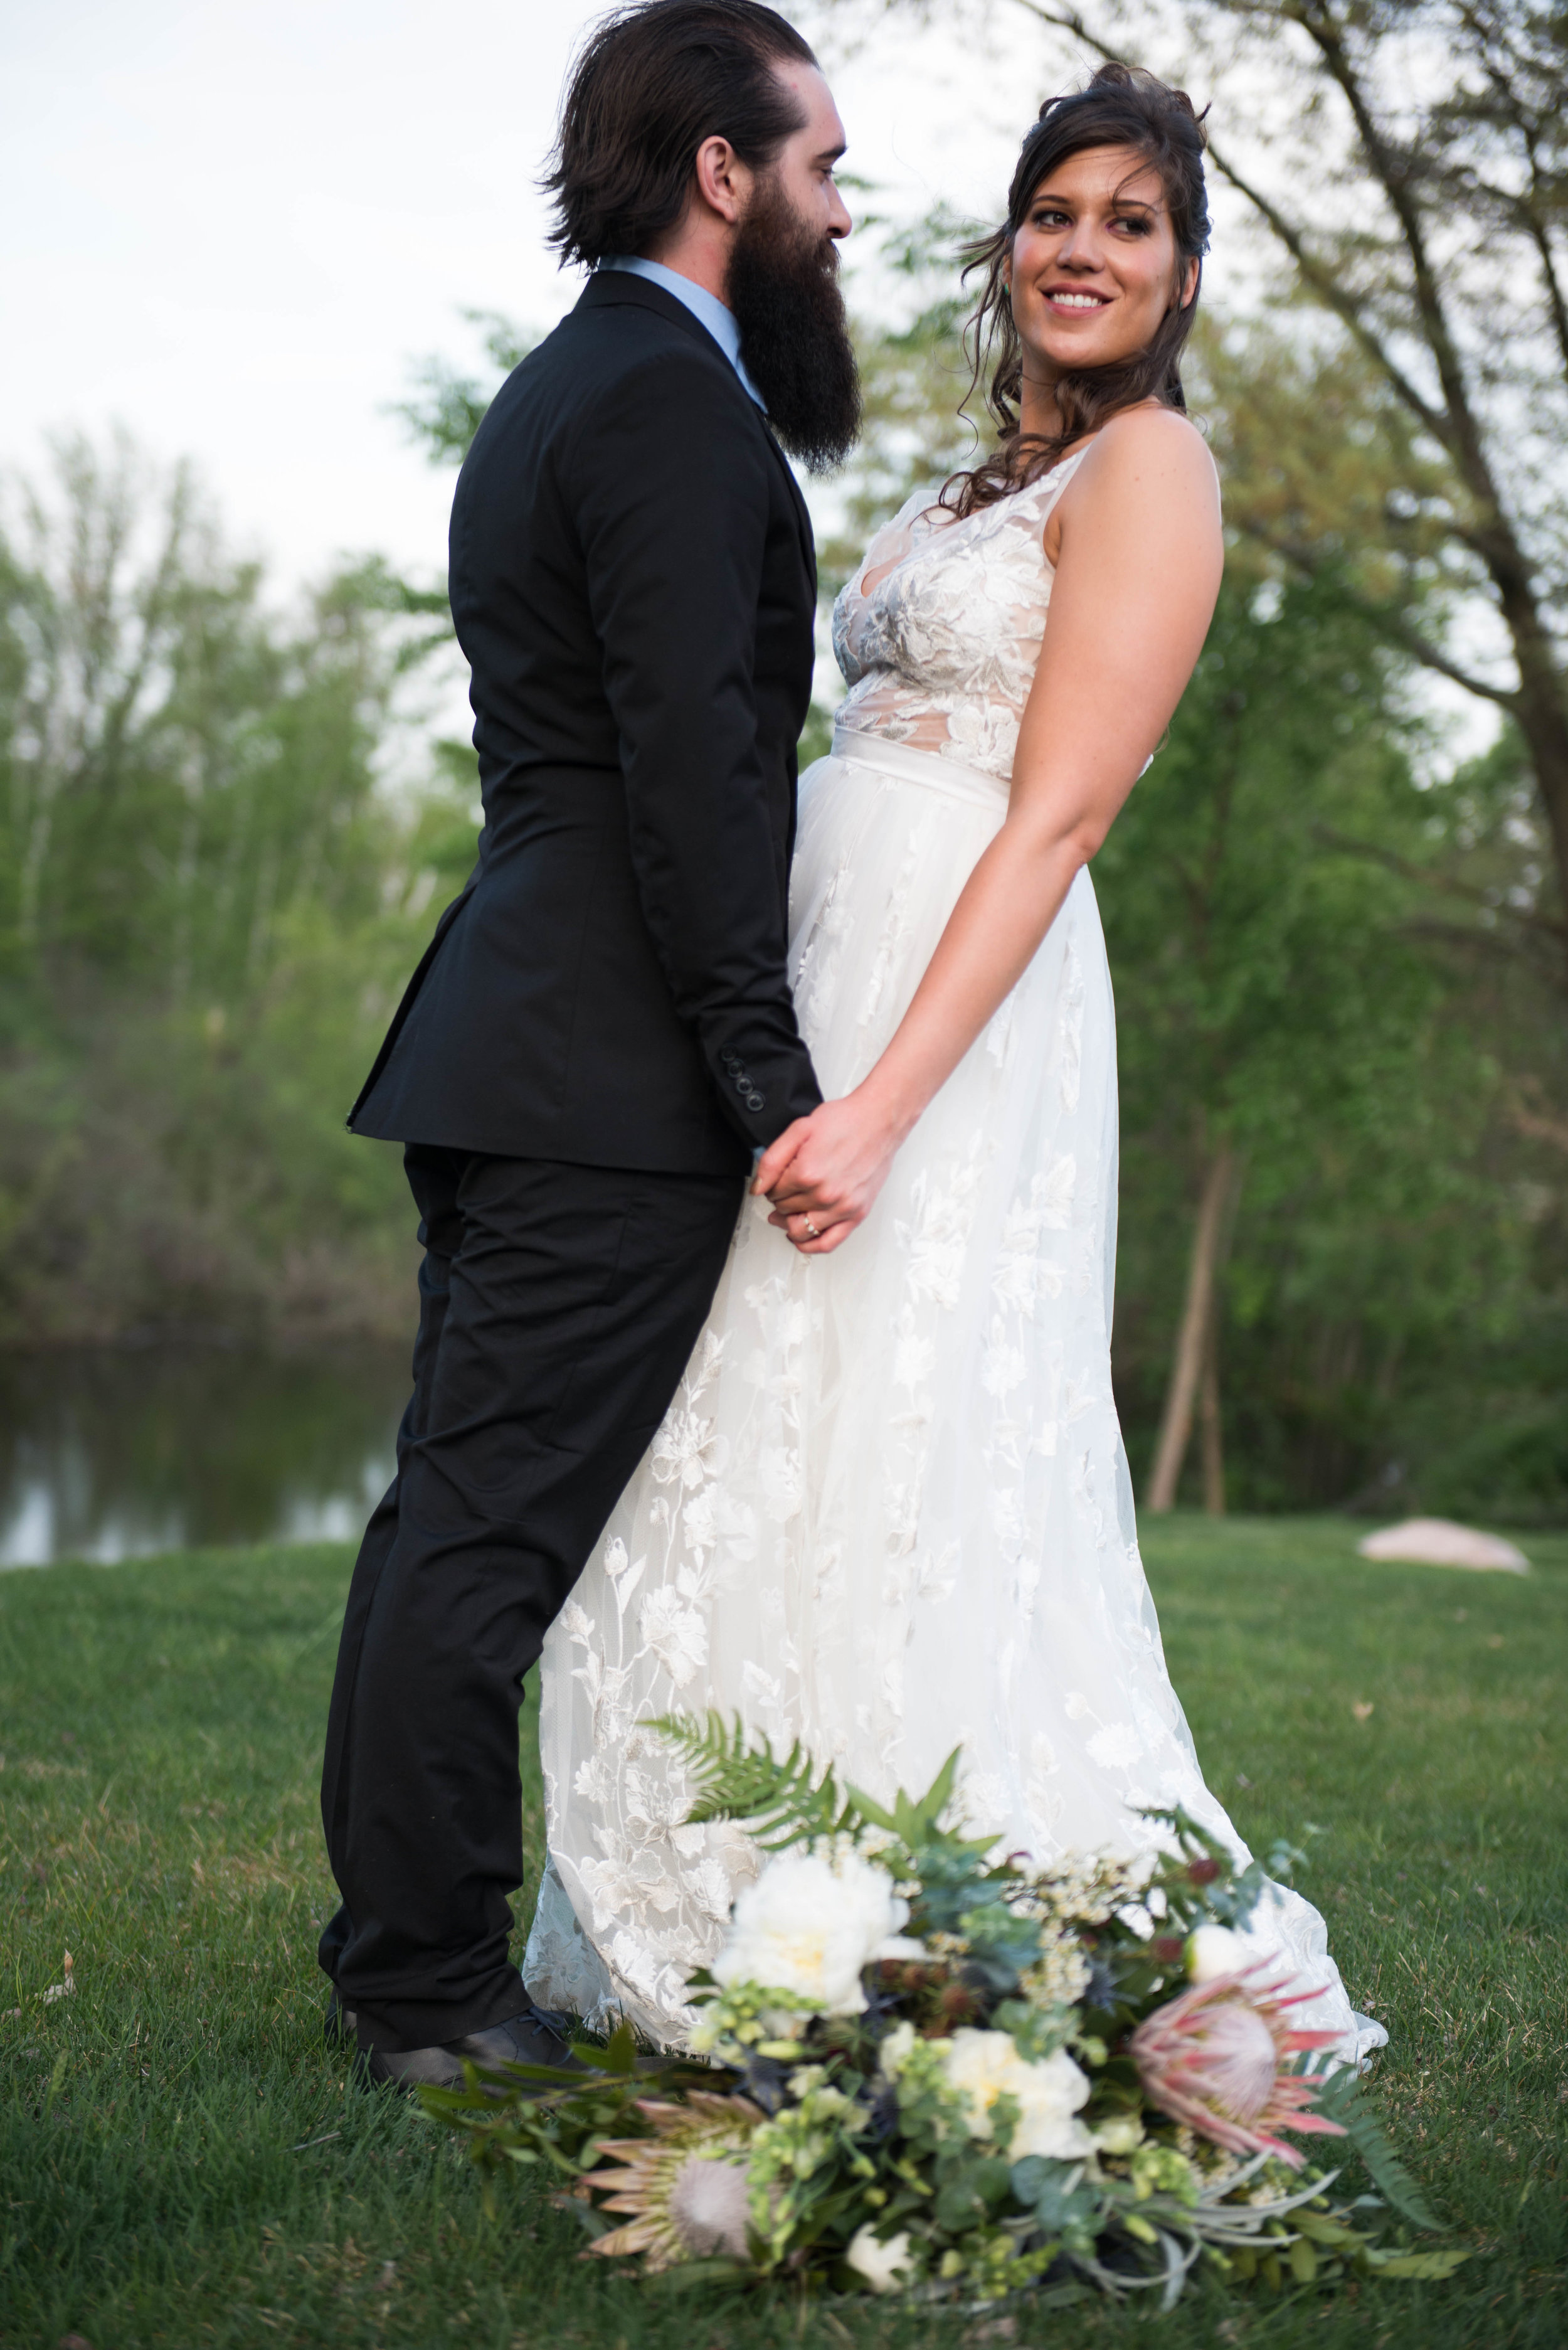 Gown by Detroit Bridal House and bouquet was created by Lasting Touch Floral. www.lisavillellaphotography.com